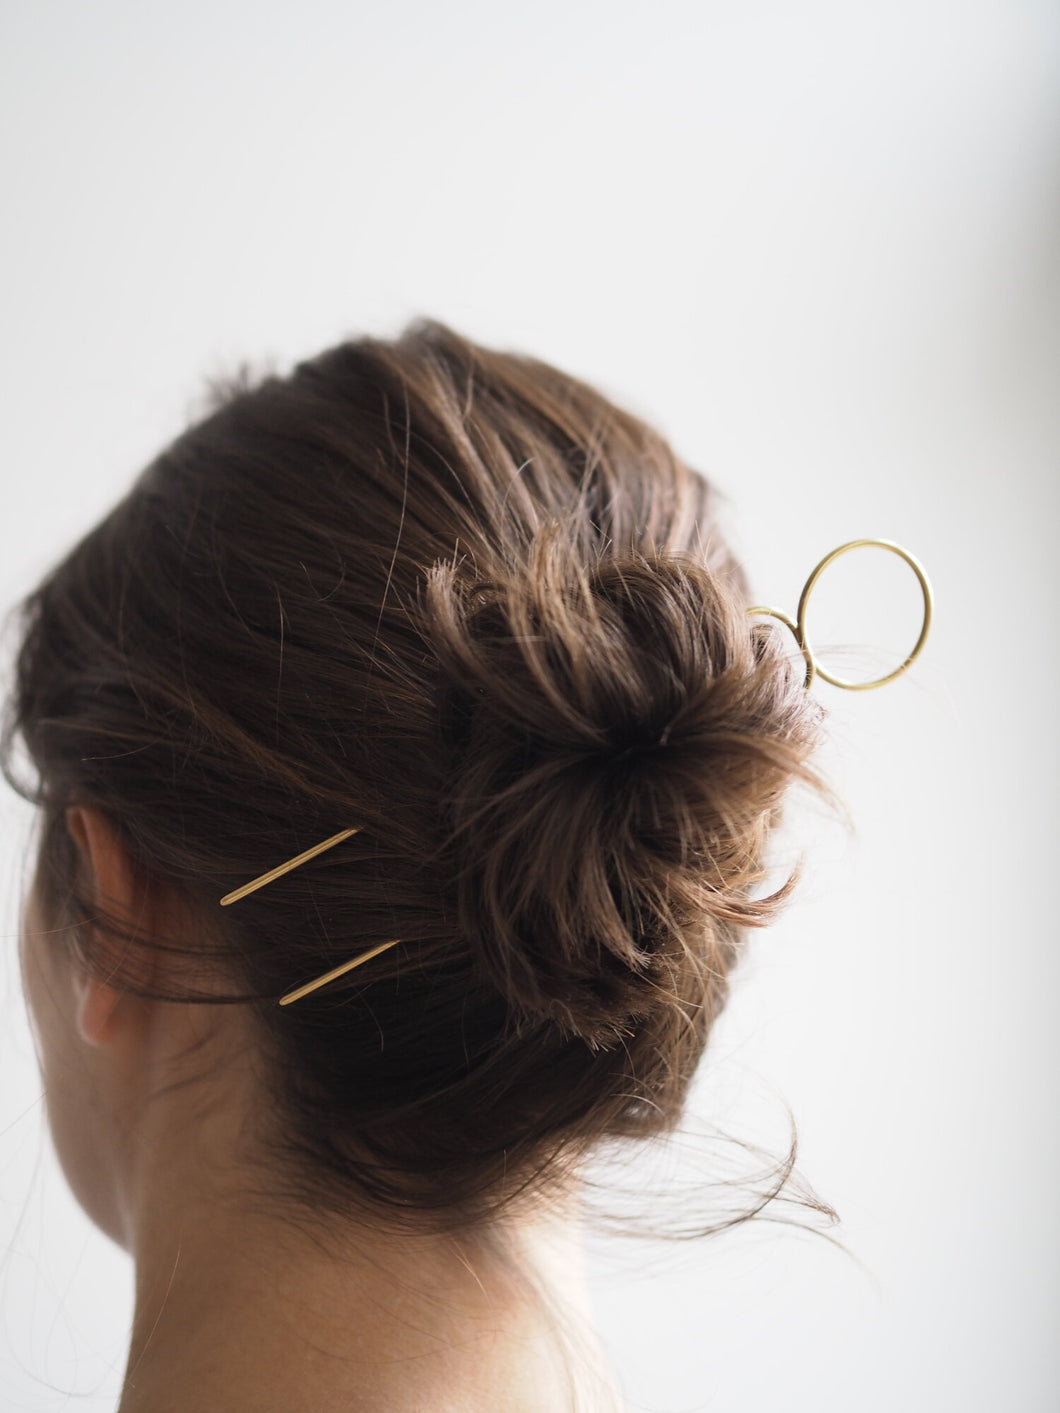 Roake Lizzy Minimal Brass Hair Pin - Loop